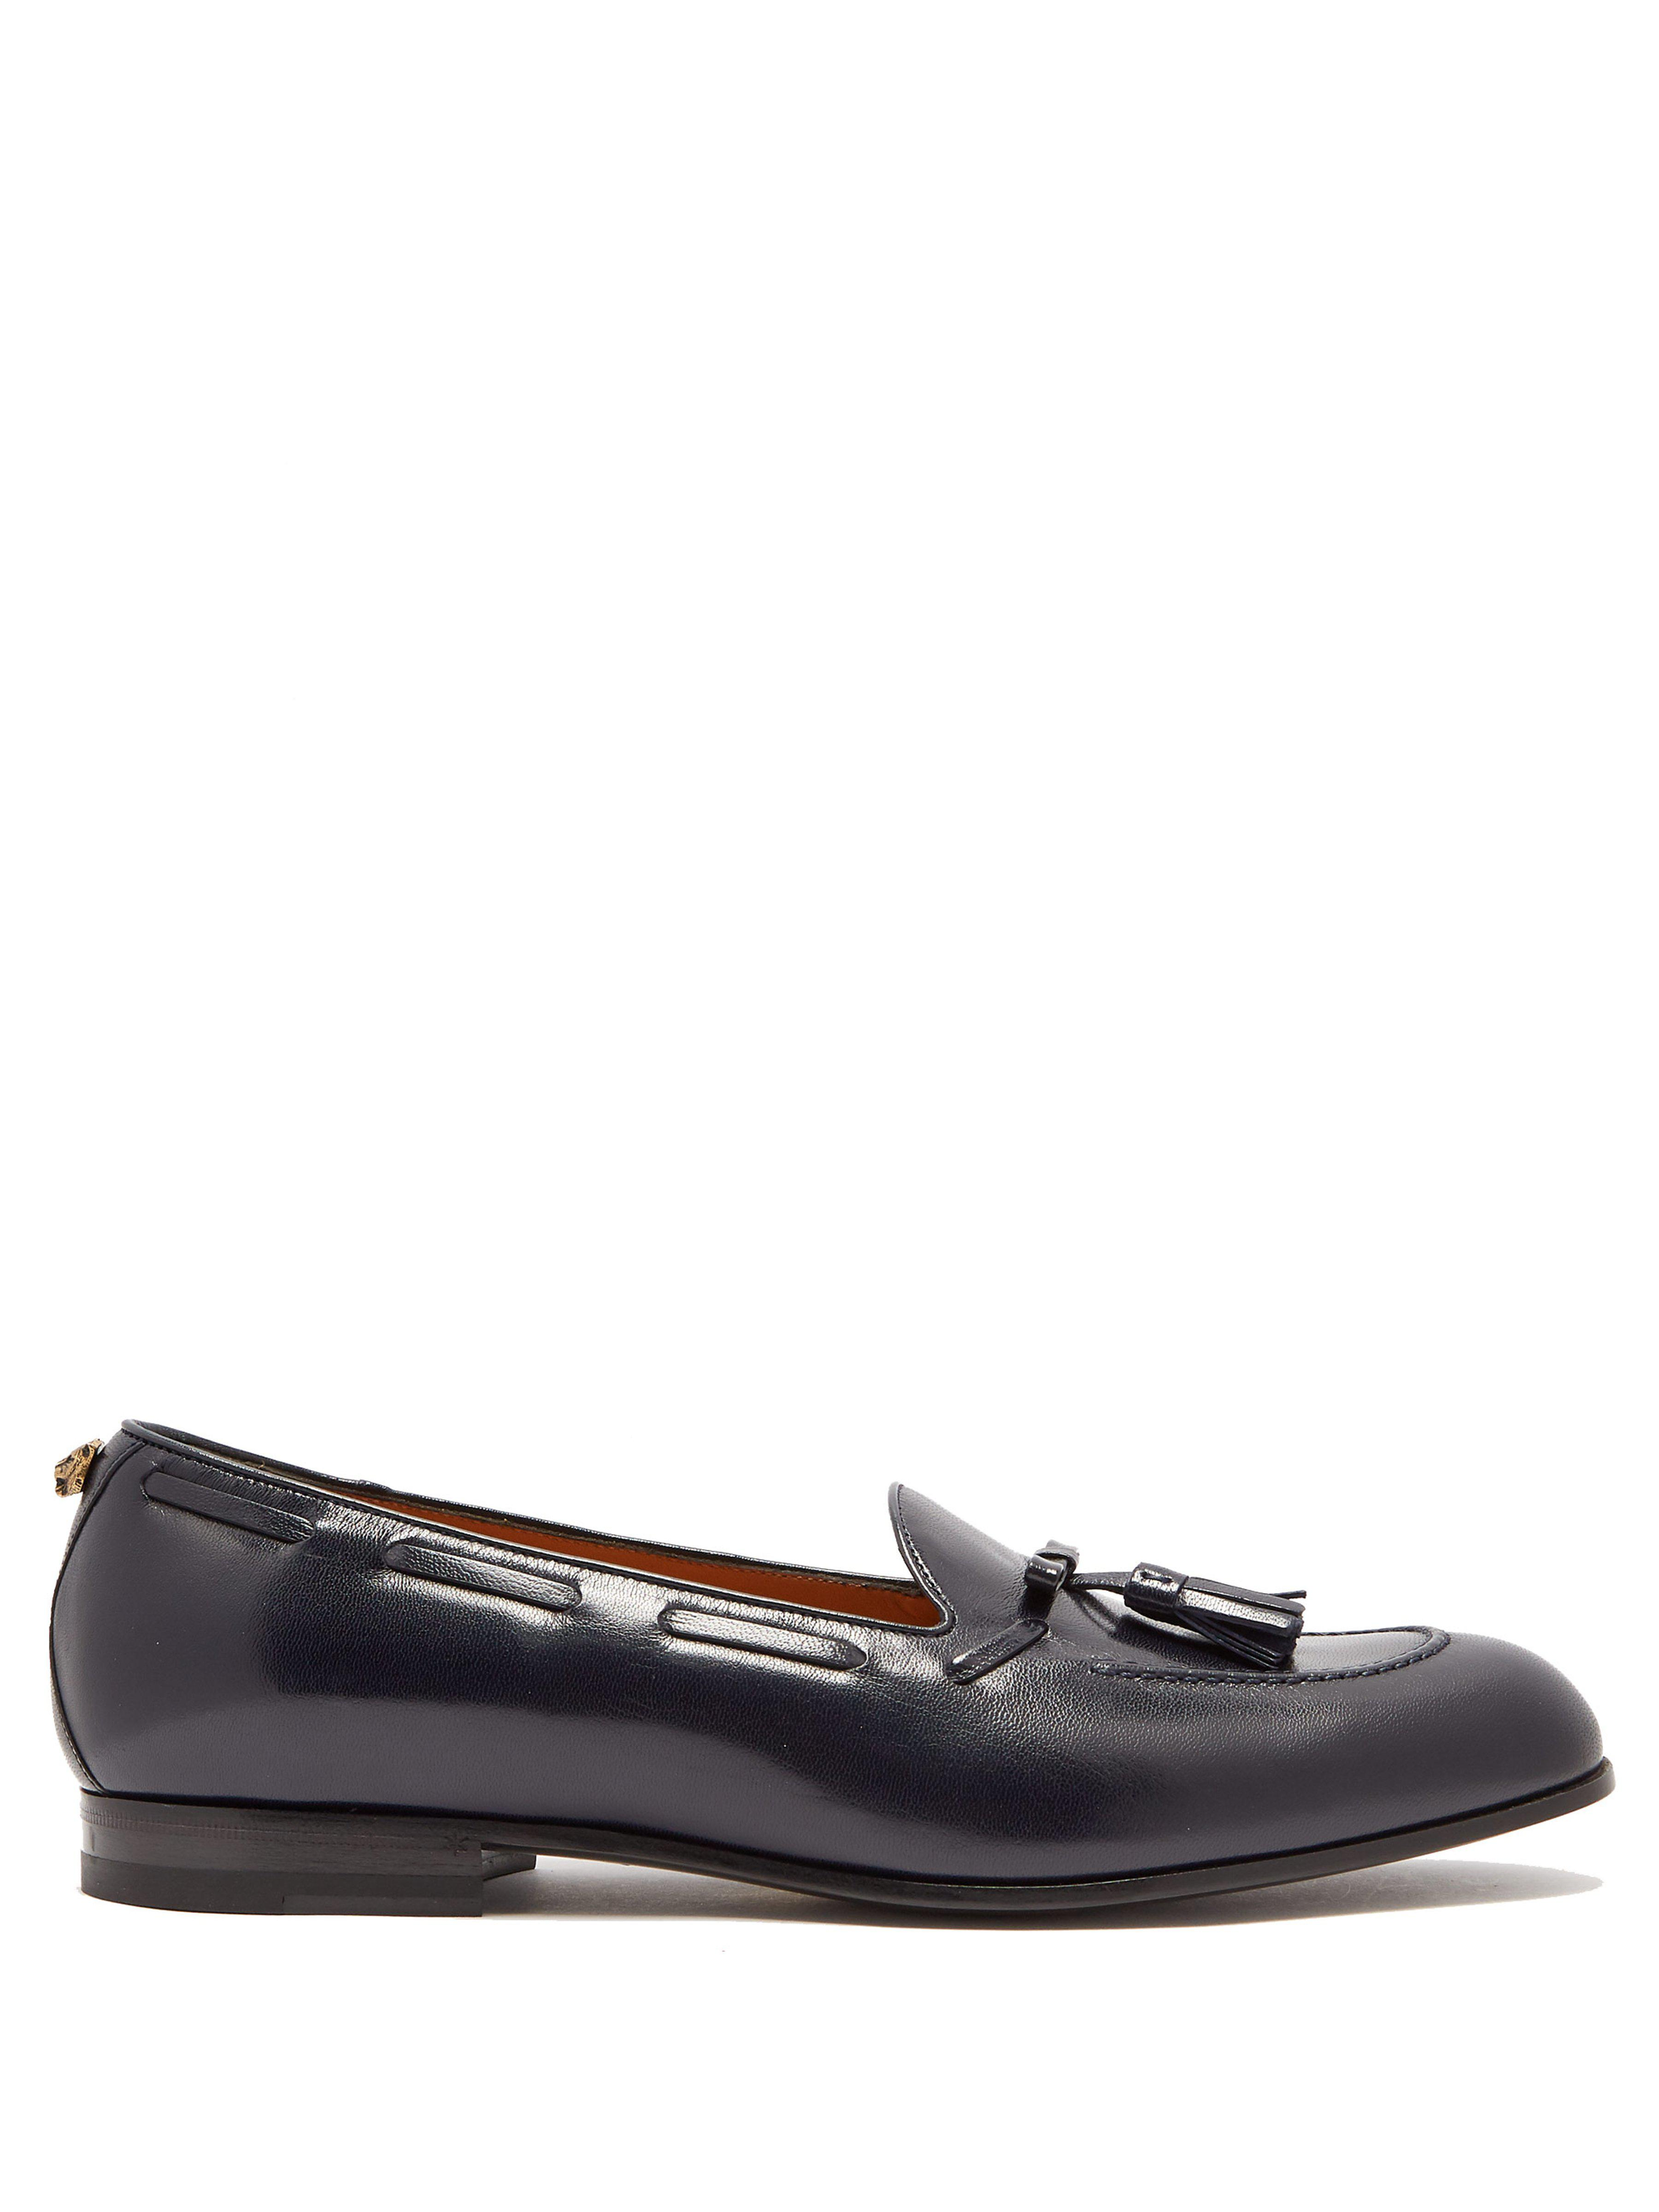 ac3bf004db9 Gucci Leather Tassel Loafers in Blue for Men - Lyst